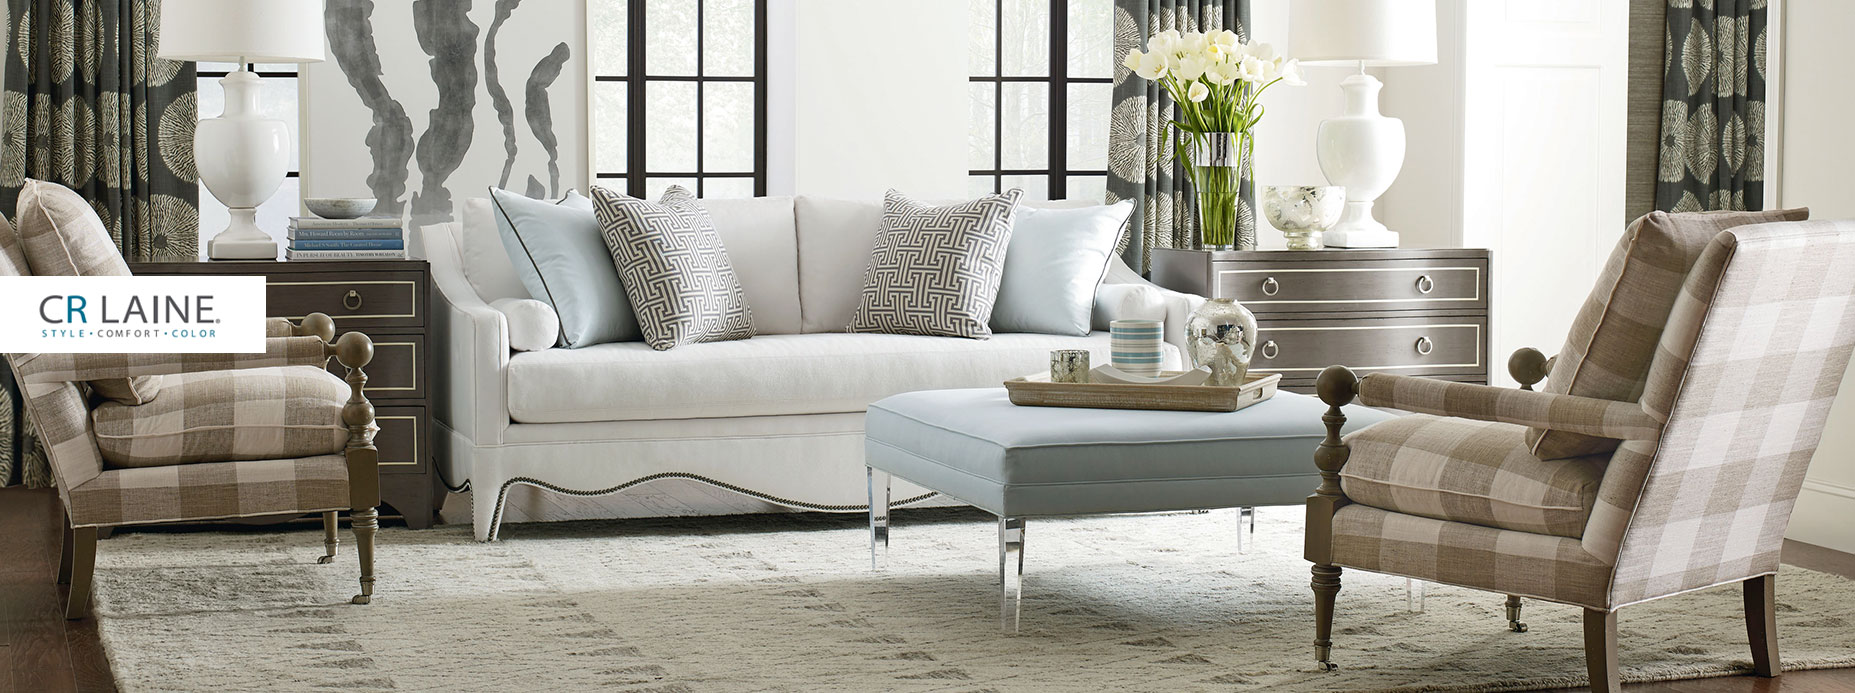 Living Room Furniture North Carolina C R Laine Furniture Discount Store And Showroom In Hickory Nc